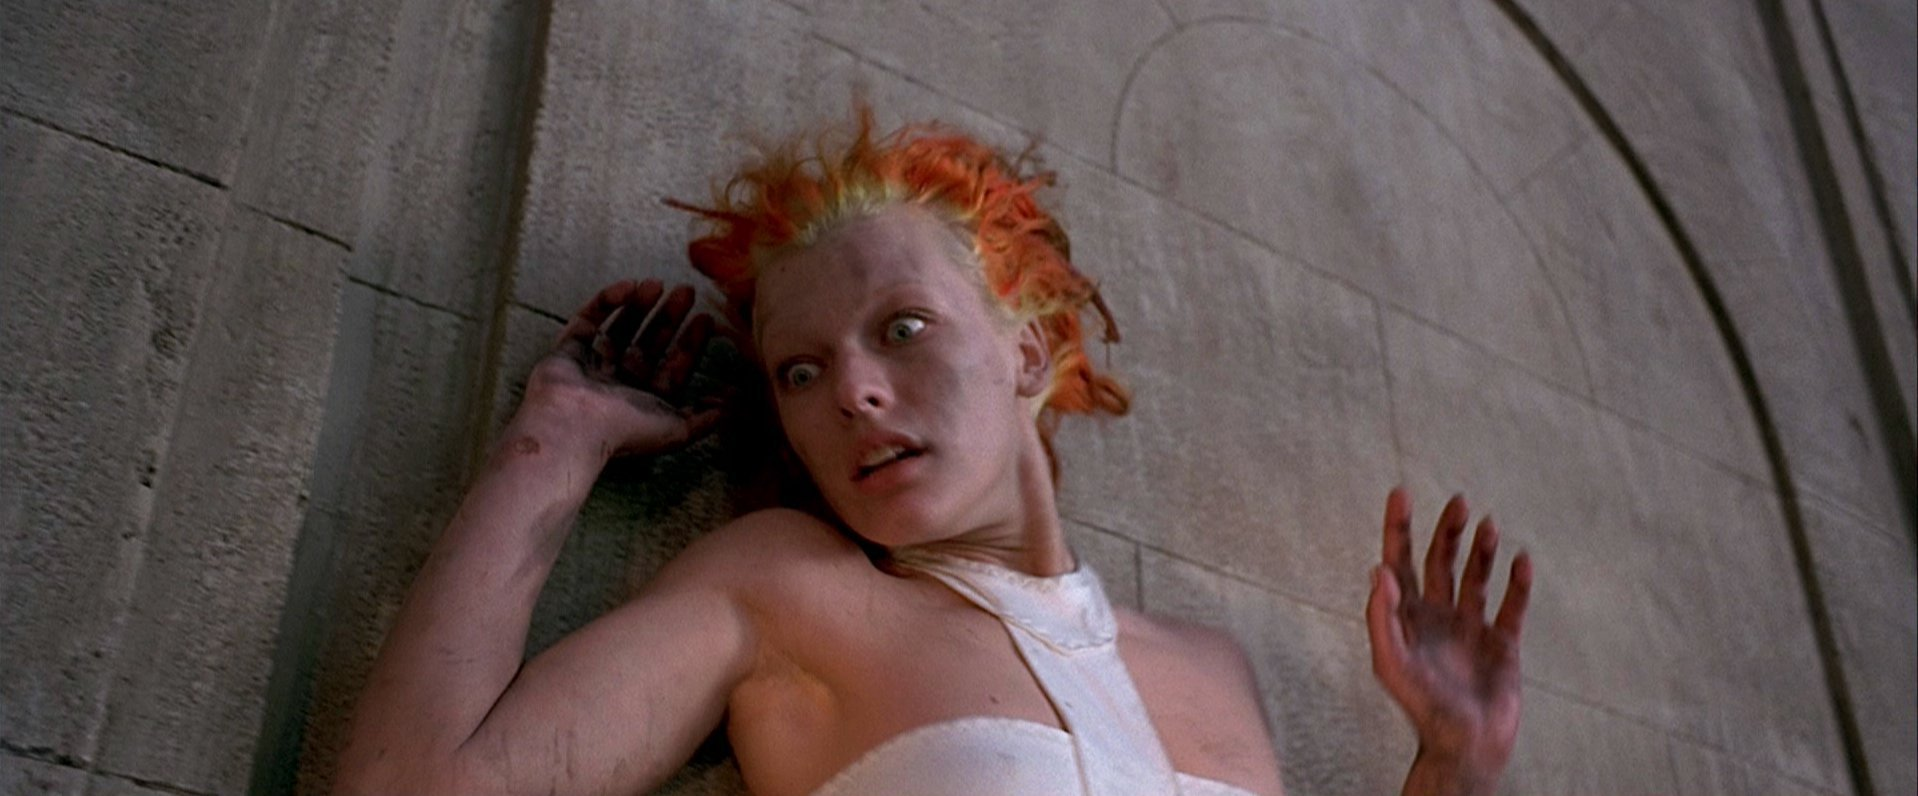 The Fifth Element - The Fifth Element Image (5068739) - Fanpop